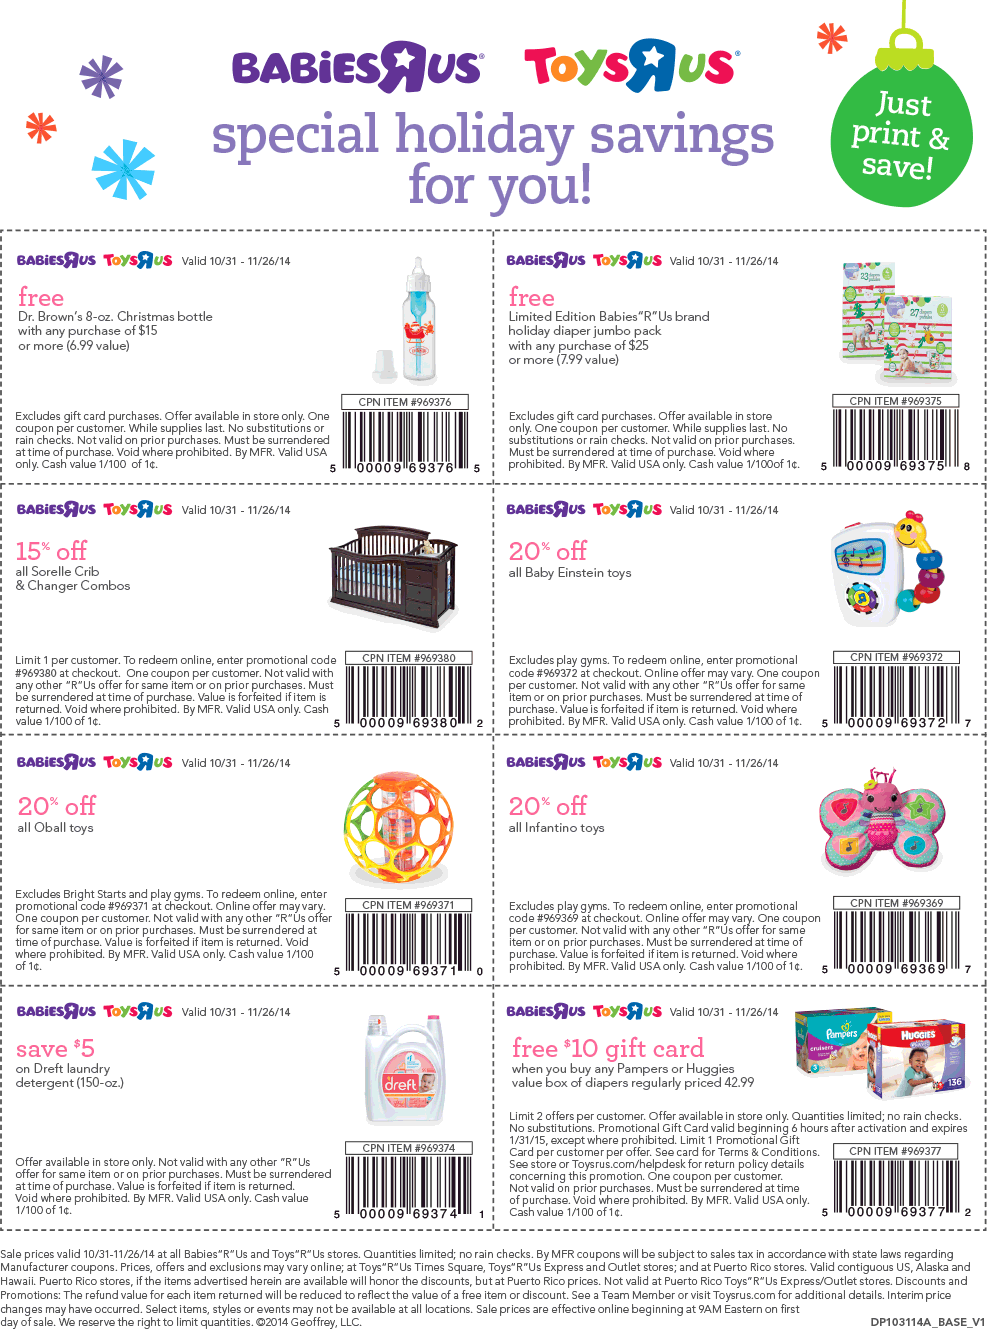 Toys R Us Coupon February 2019 $10 card back on large box diapers & various others at Babies R Us & Toys R Us